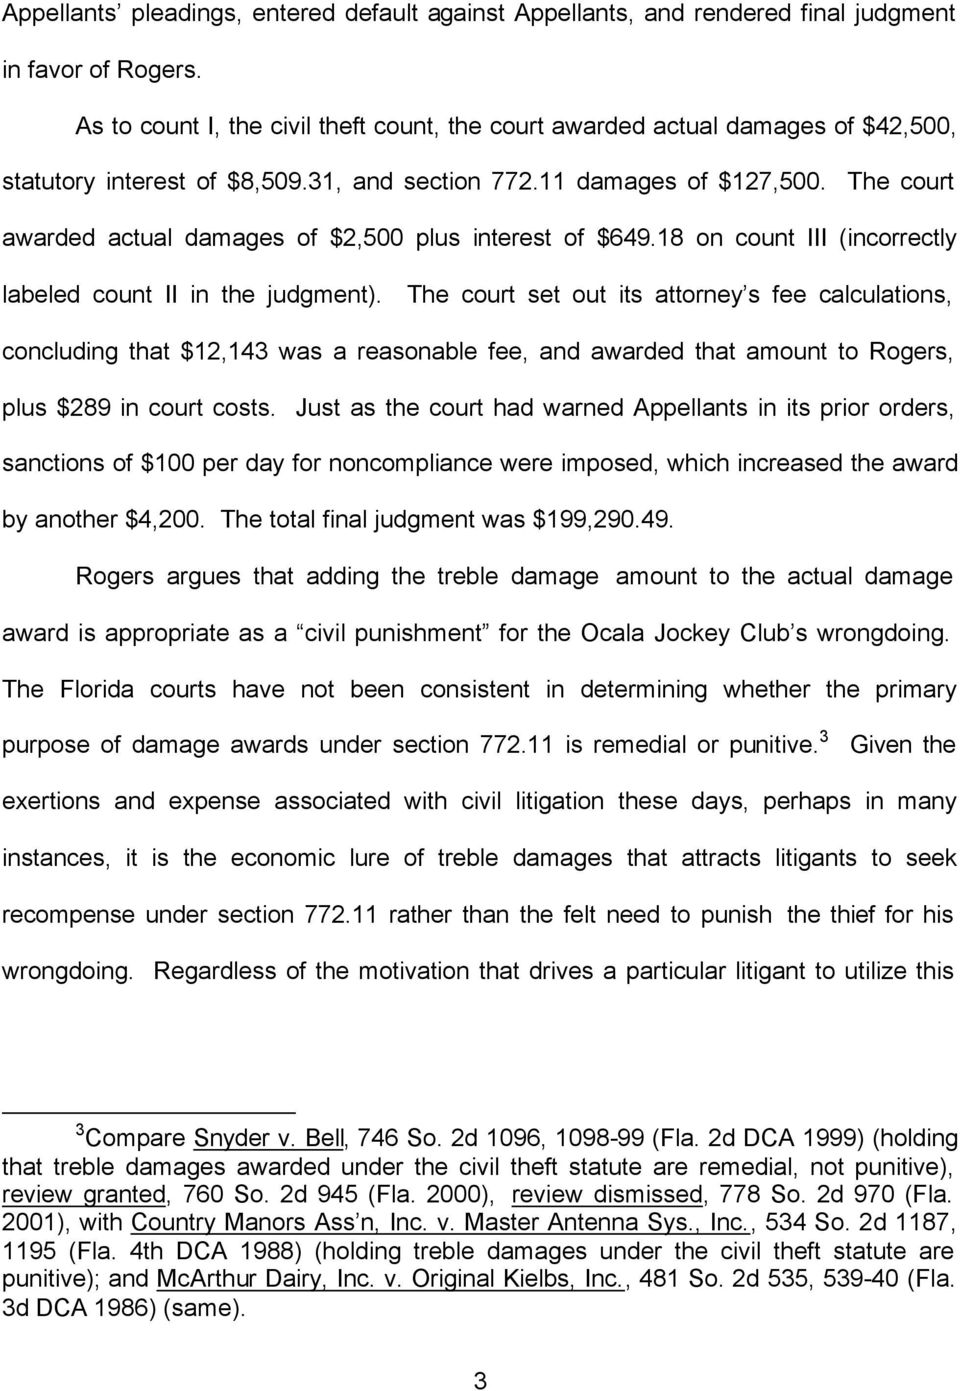 The court awarded actual damages of $2,500 plus interest of $649.18 on count III (incorrectly labeled count II in the judgment).